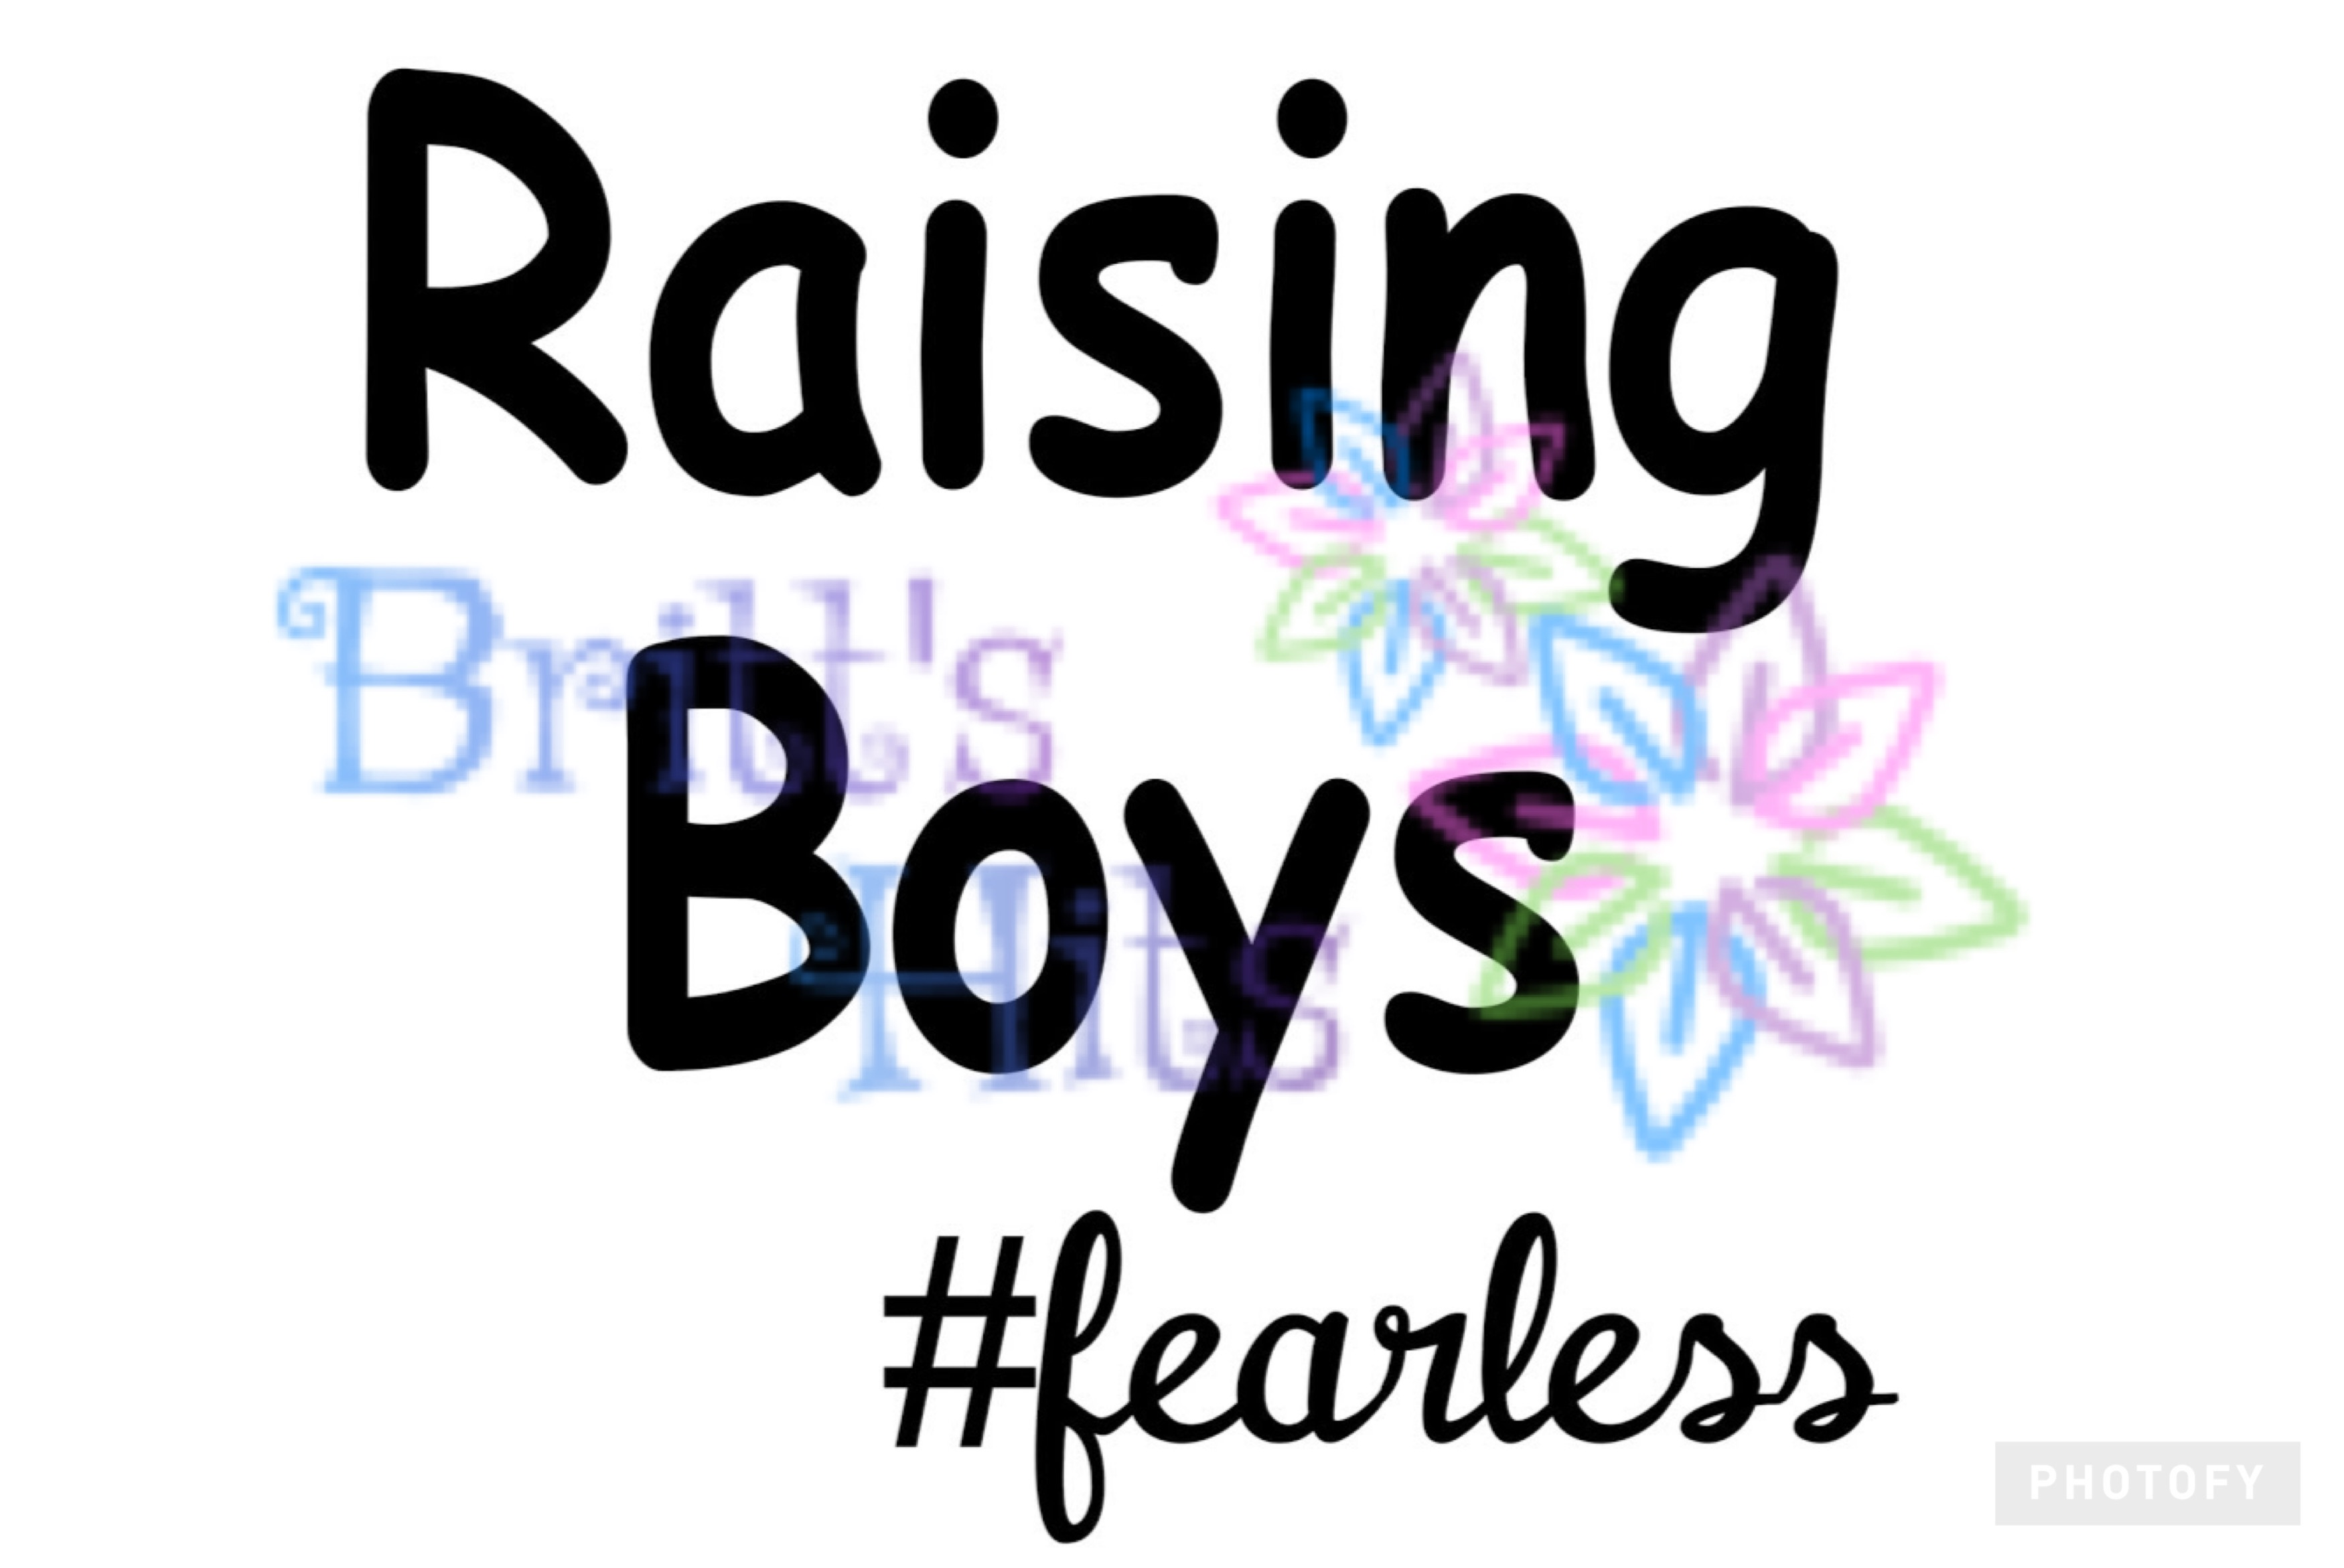 Download Free Raising Boys Fearless Mom Of Boys Boy Mom Graphic By Britt S for Cricut Explore, Silhouette and other cutting machines.